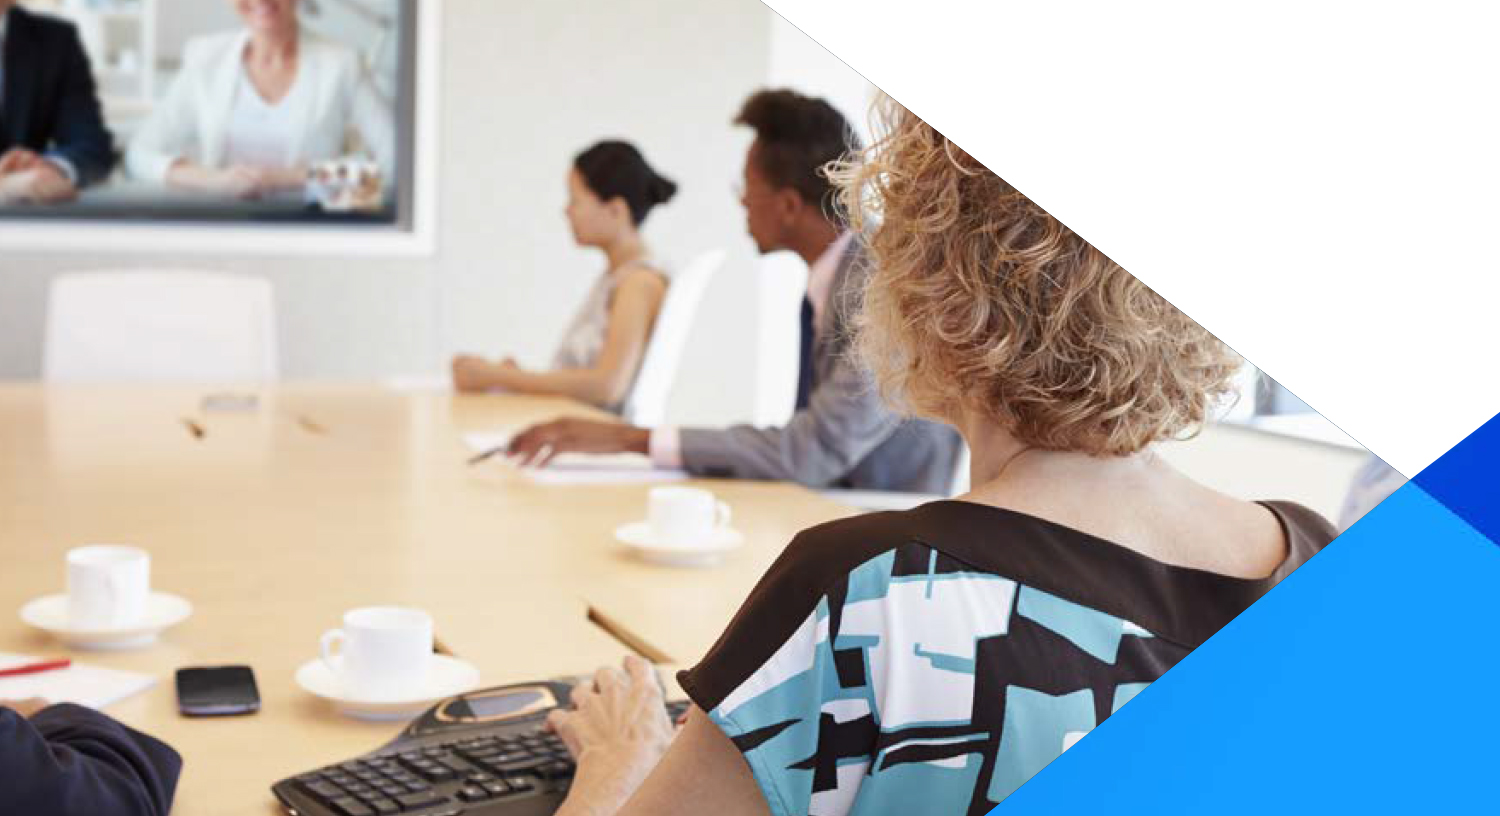 Harness the Full Potential of Your Existing Video Conference Investments